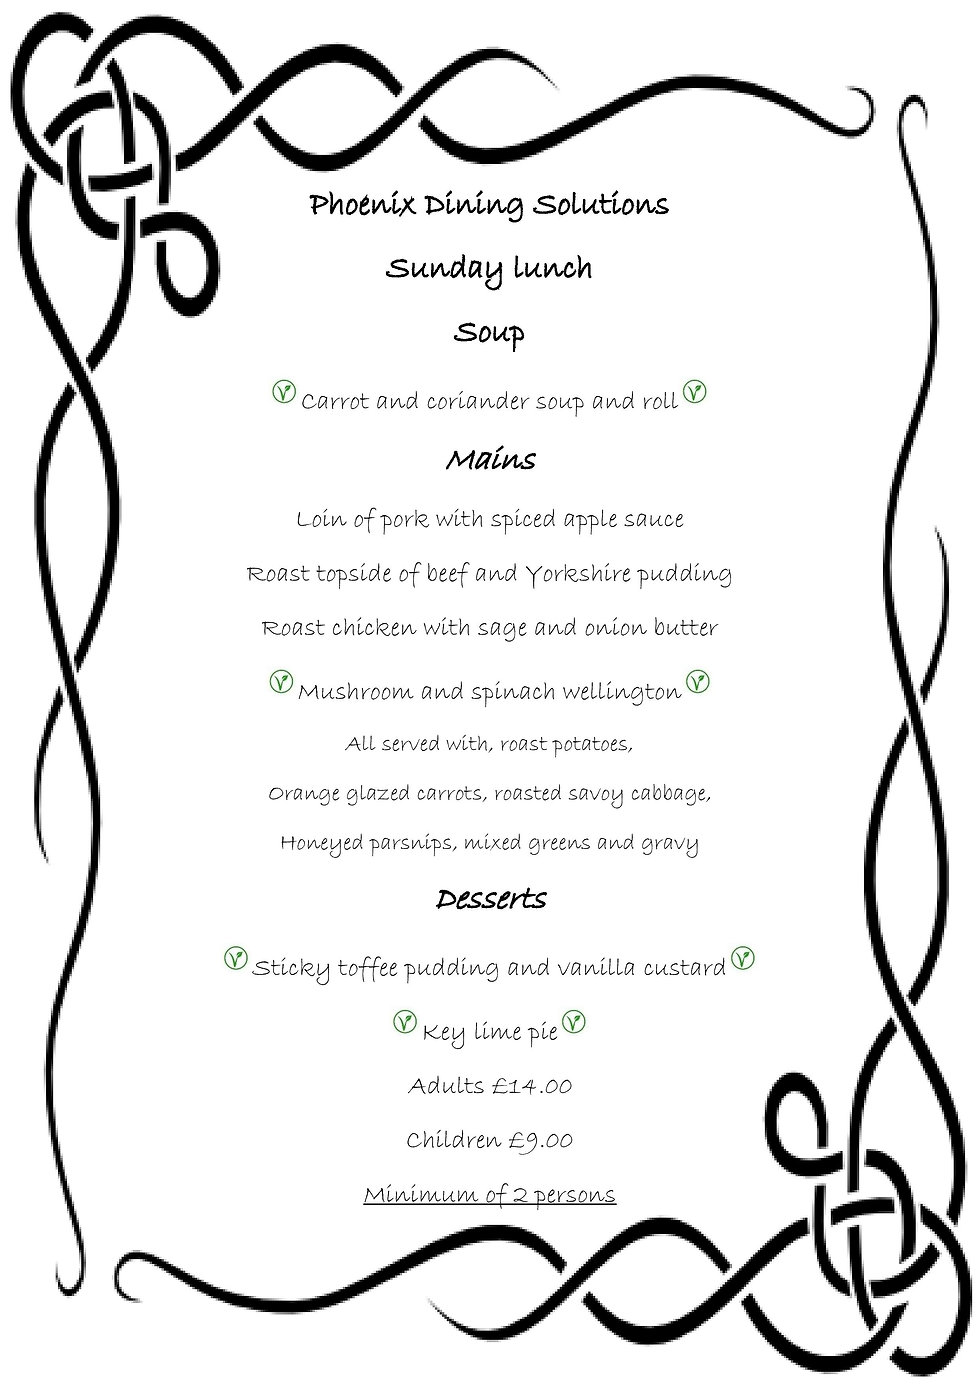 MENU sunday lunch march-page-001.jpg